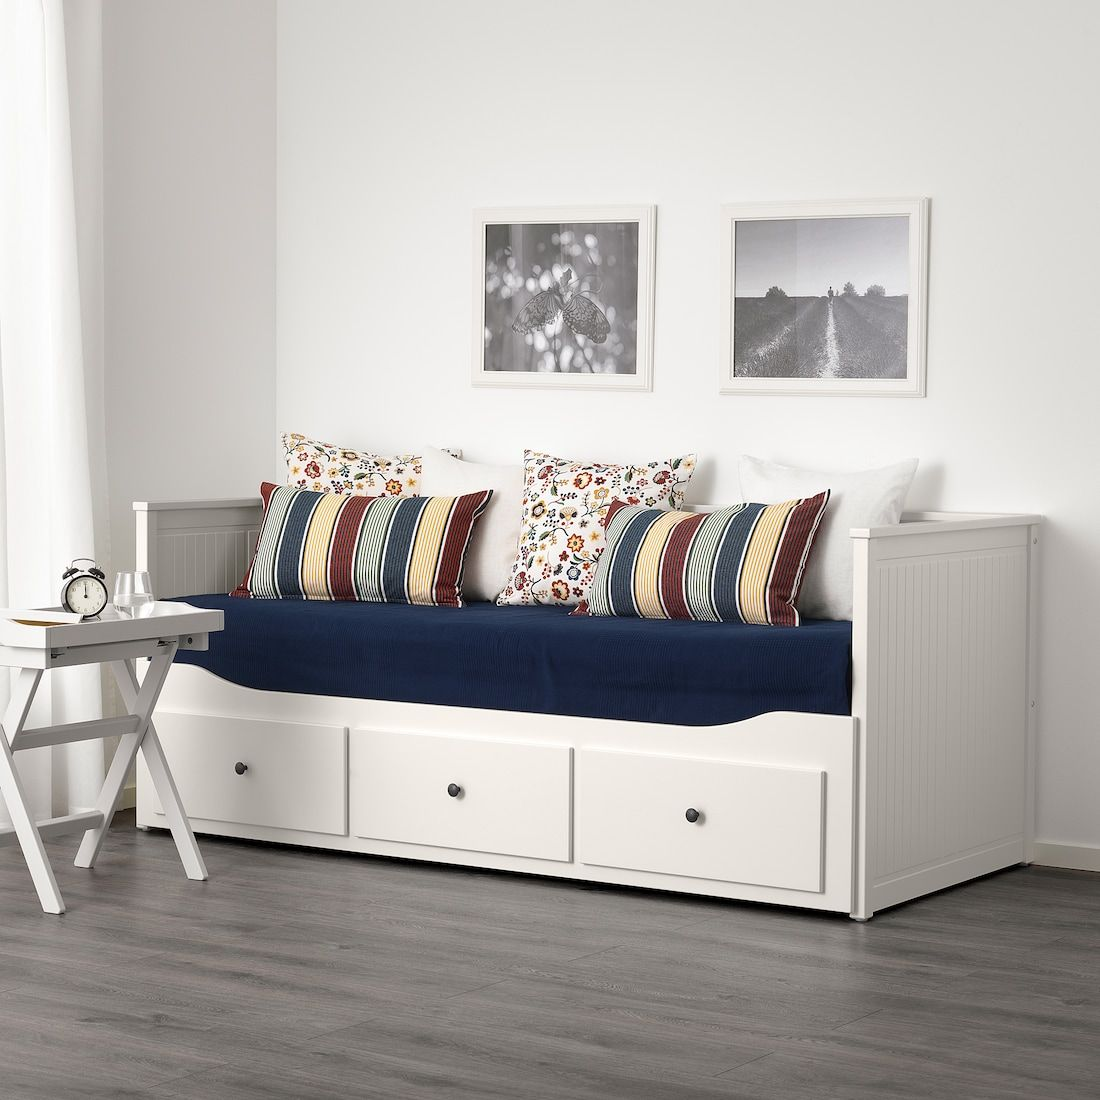 Hemnes Daybed Frame With 3 Drawers White Twin Ikea In 2020 Hemnes Day Bed Ikea Hemnes Daybed Day Bed Frame